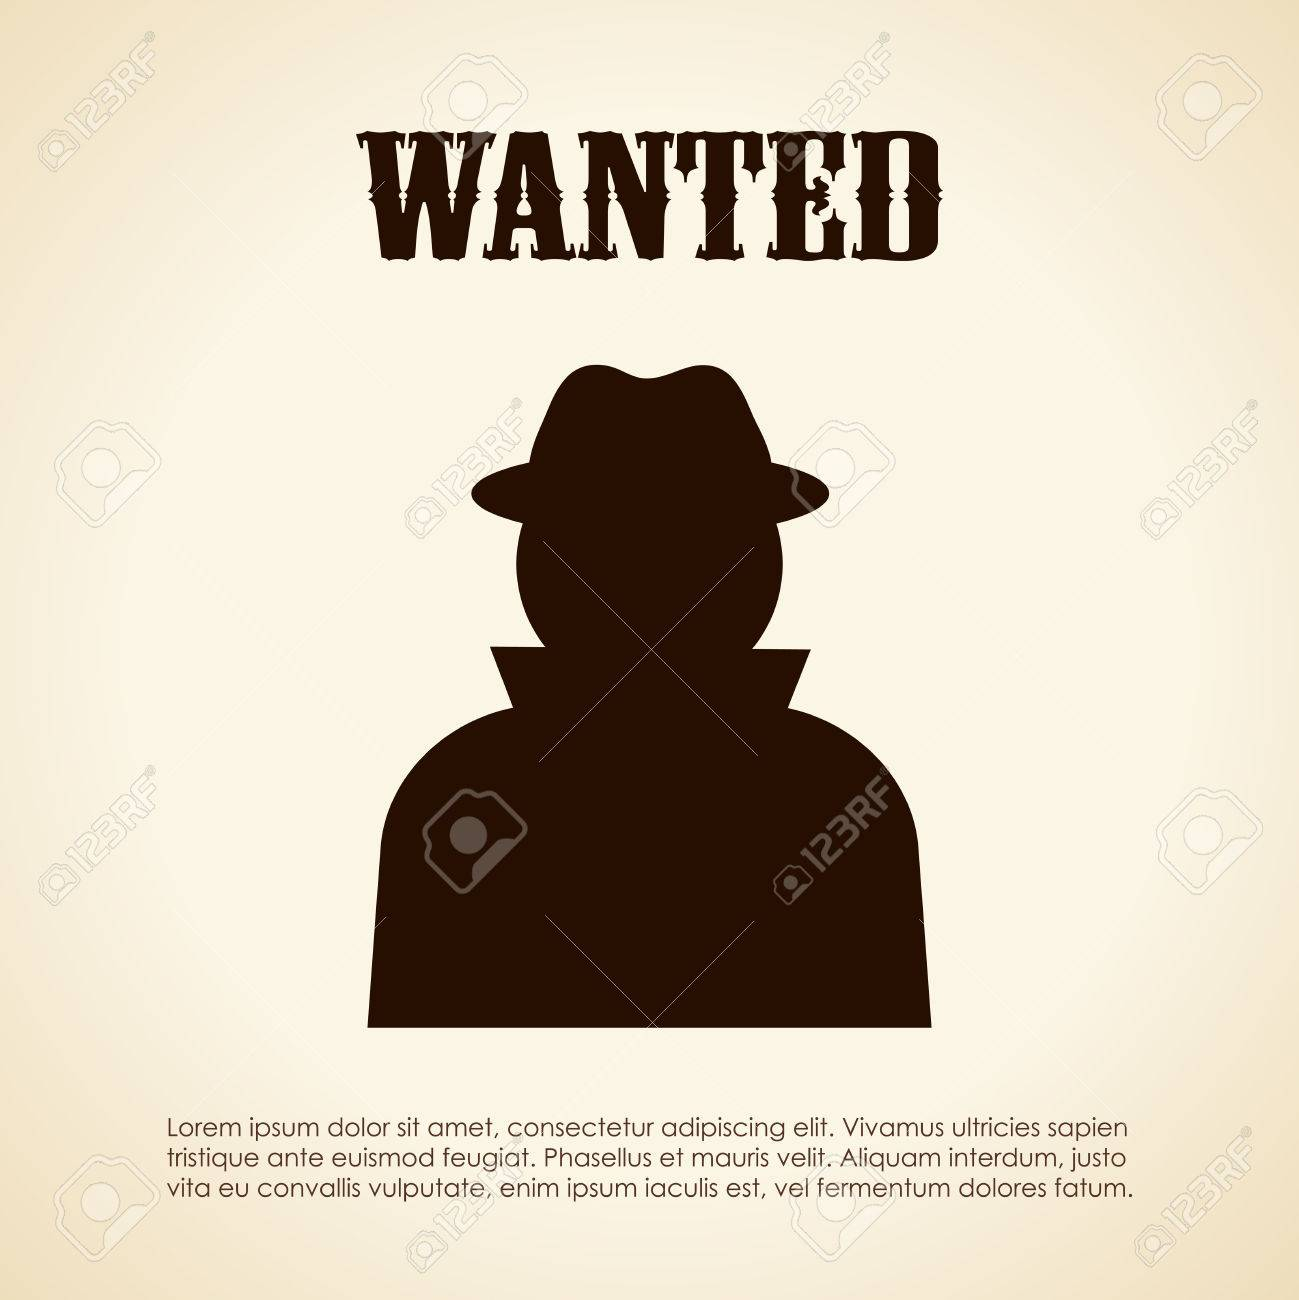 Wanted Person Royalty Free Cliparts, Vectors, And Stock Illustration ...